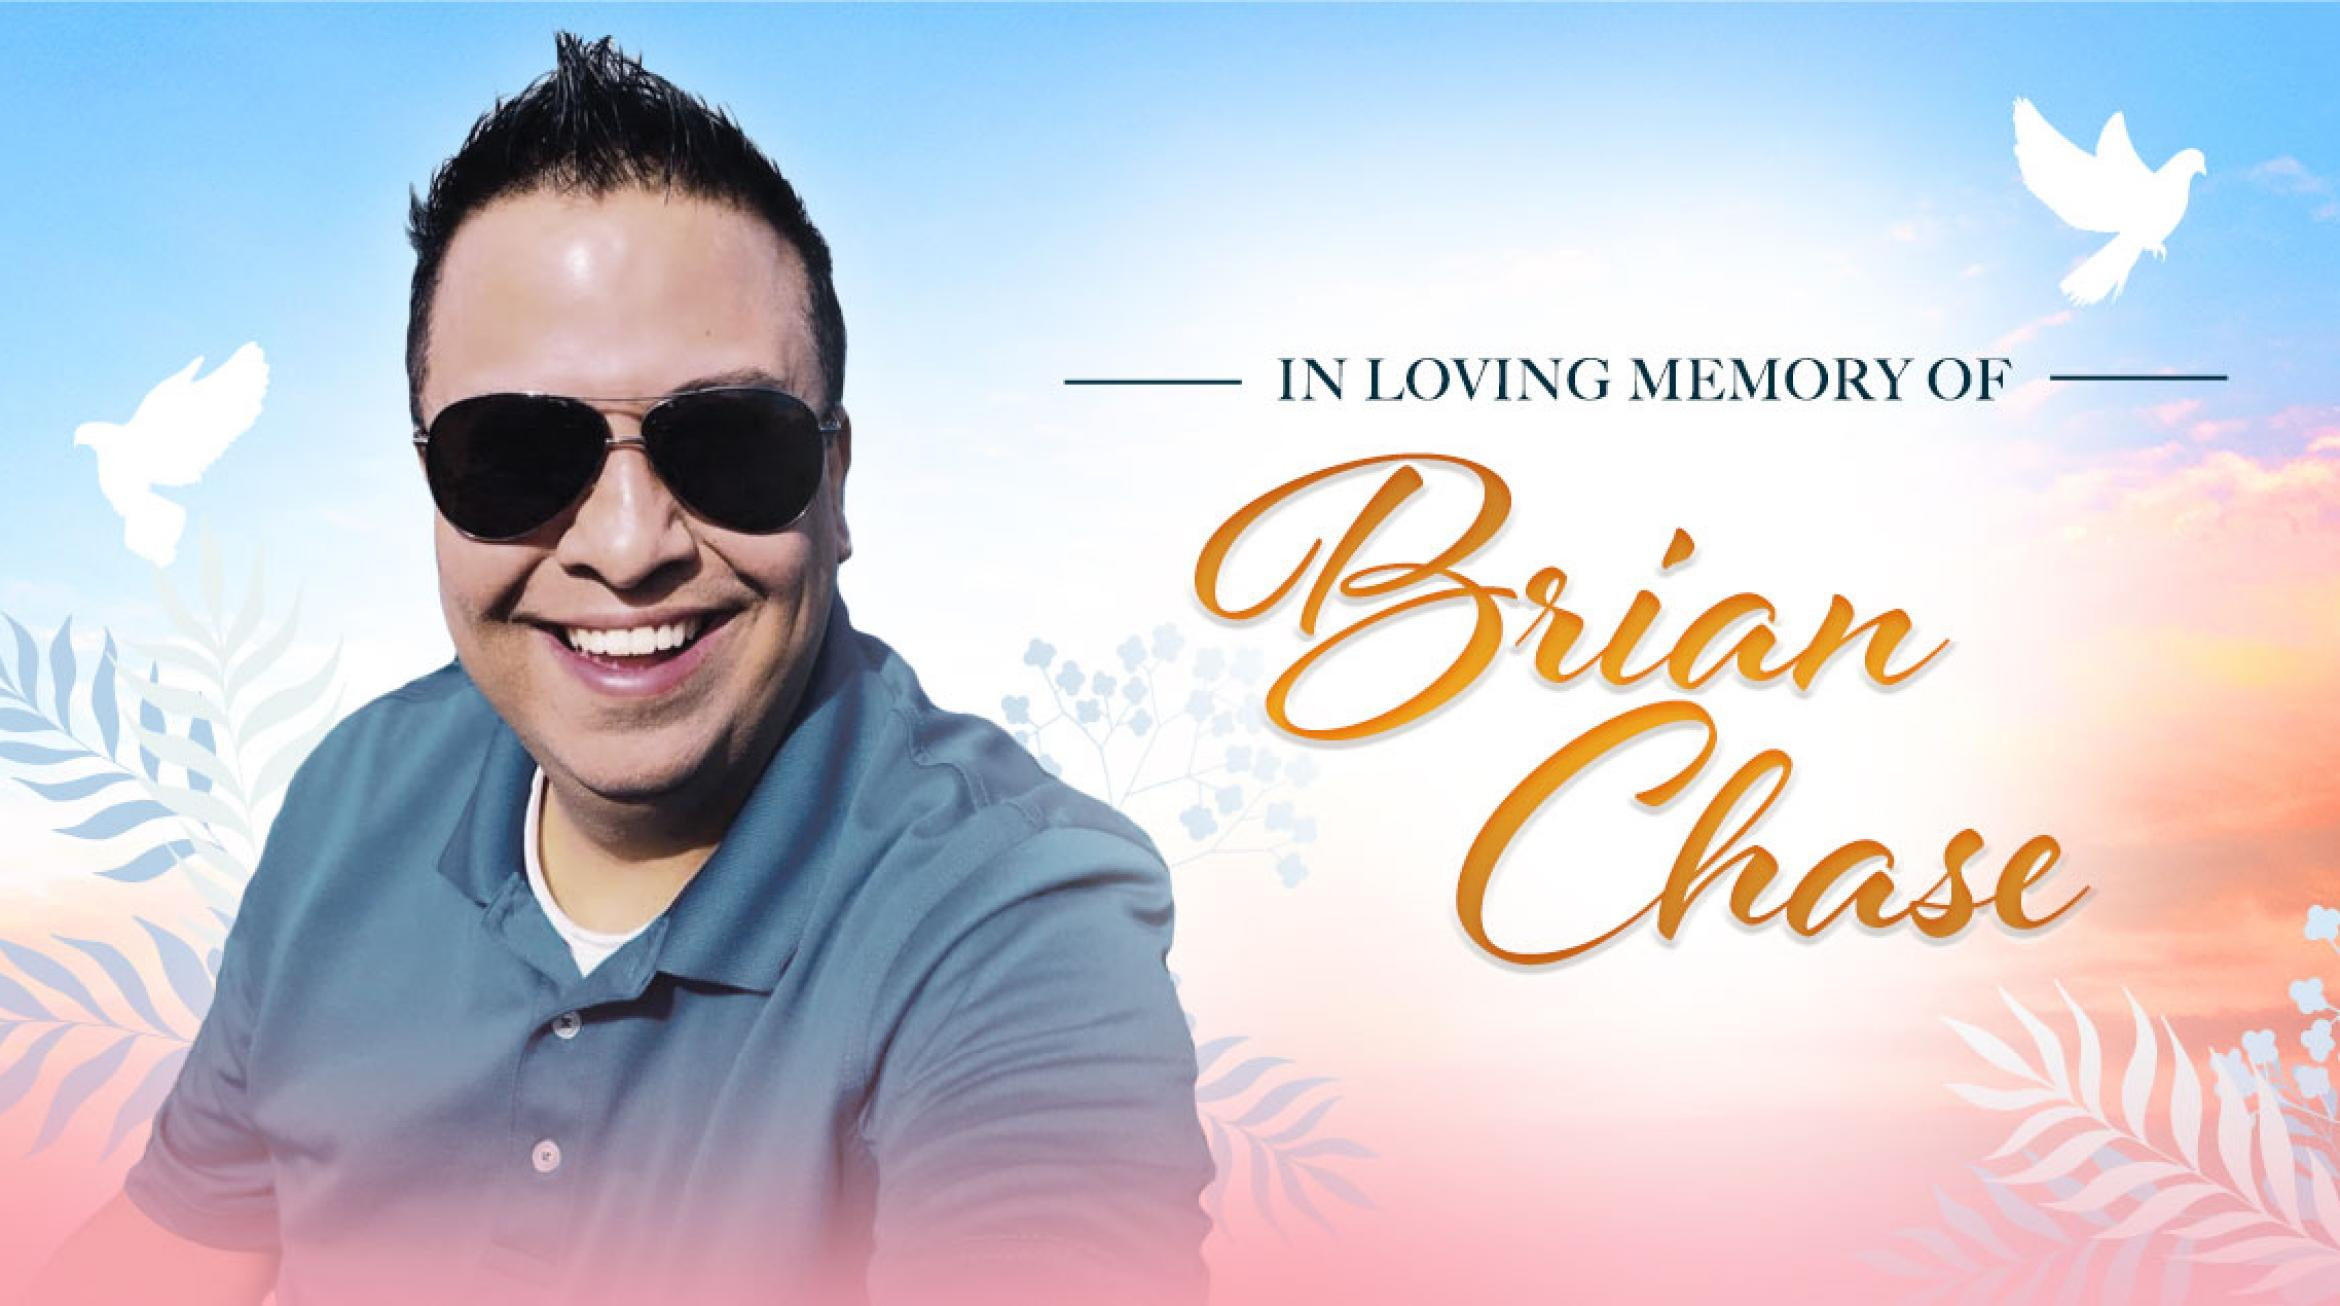 1140x635 BrianChase Memorial